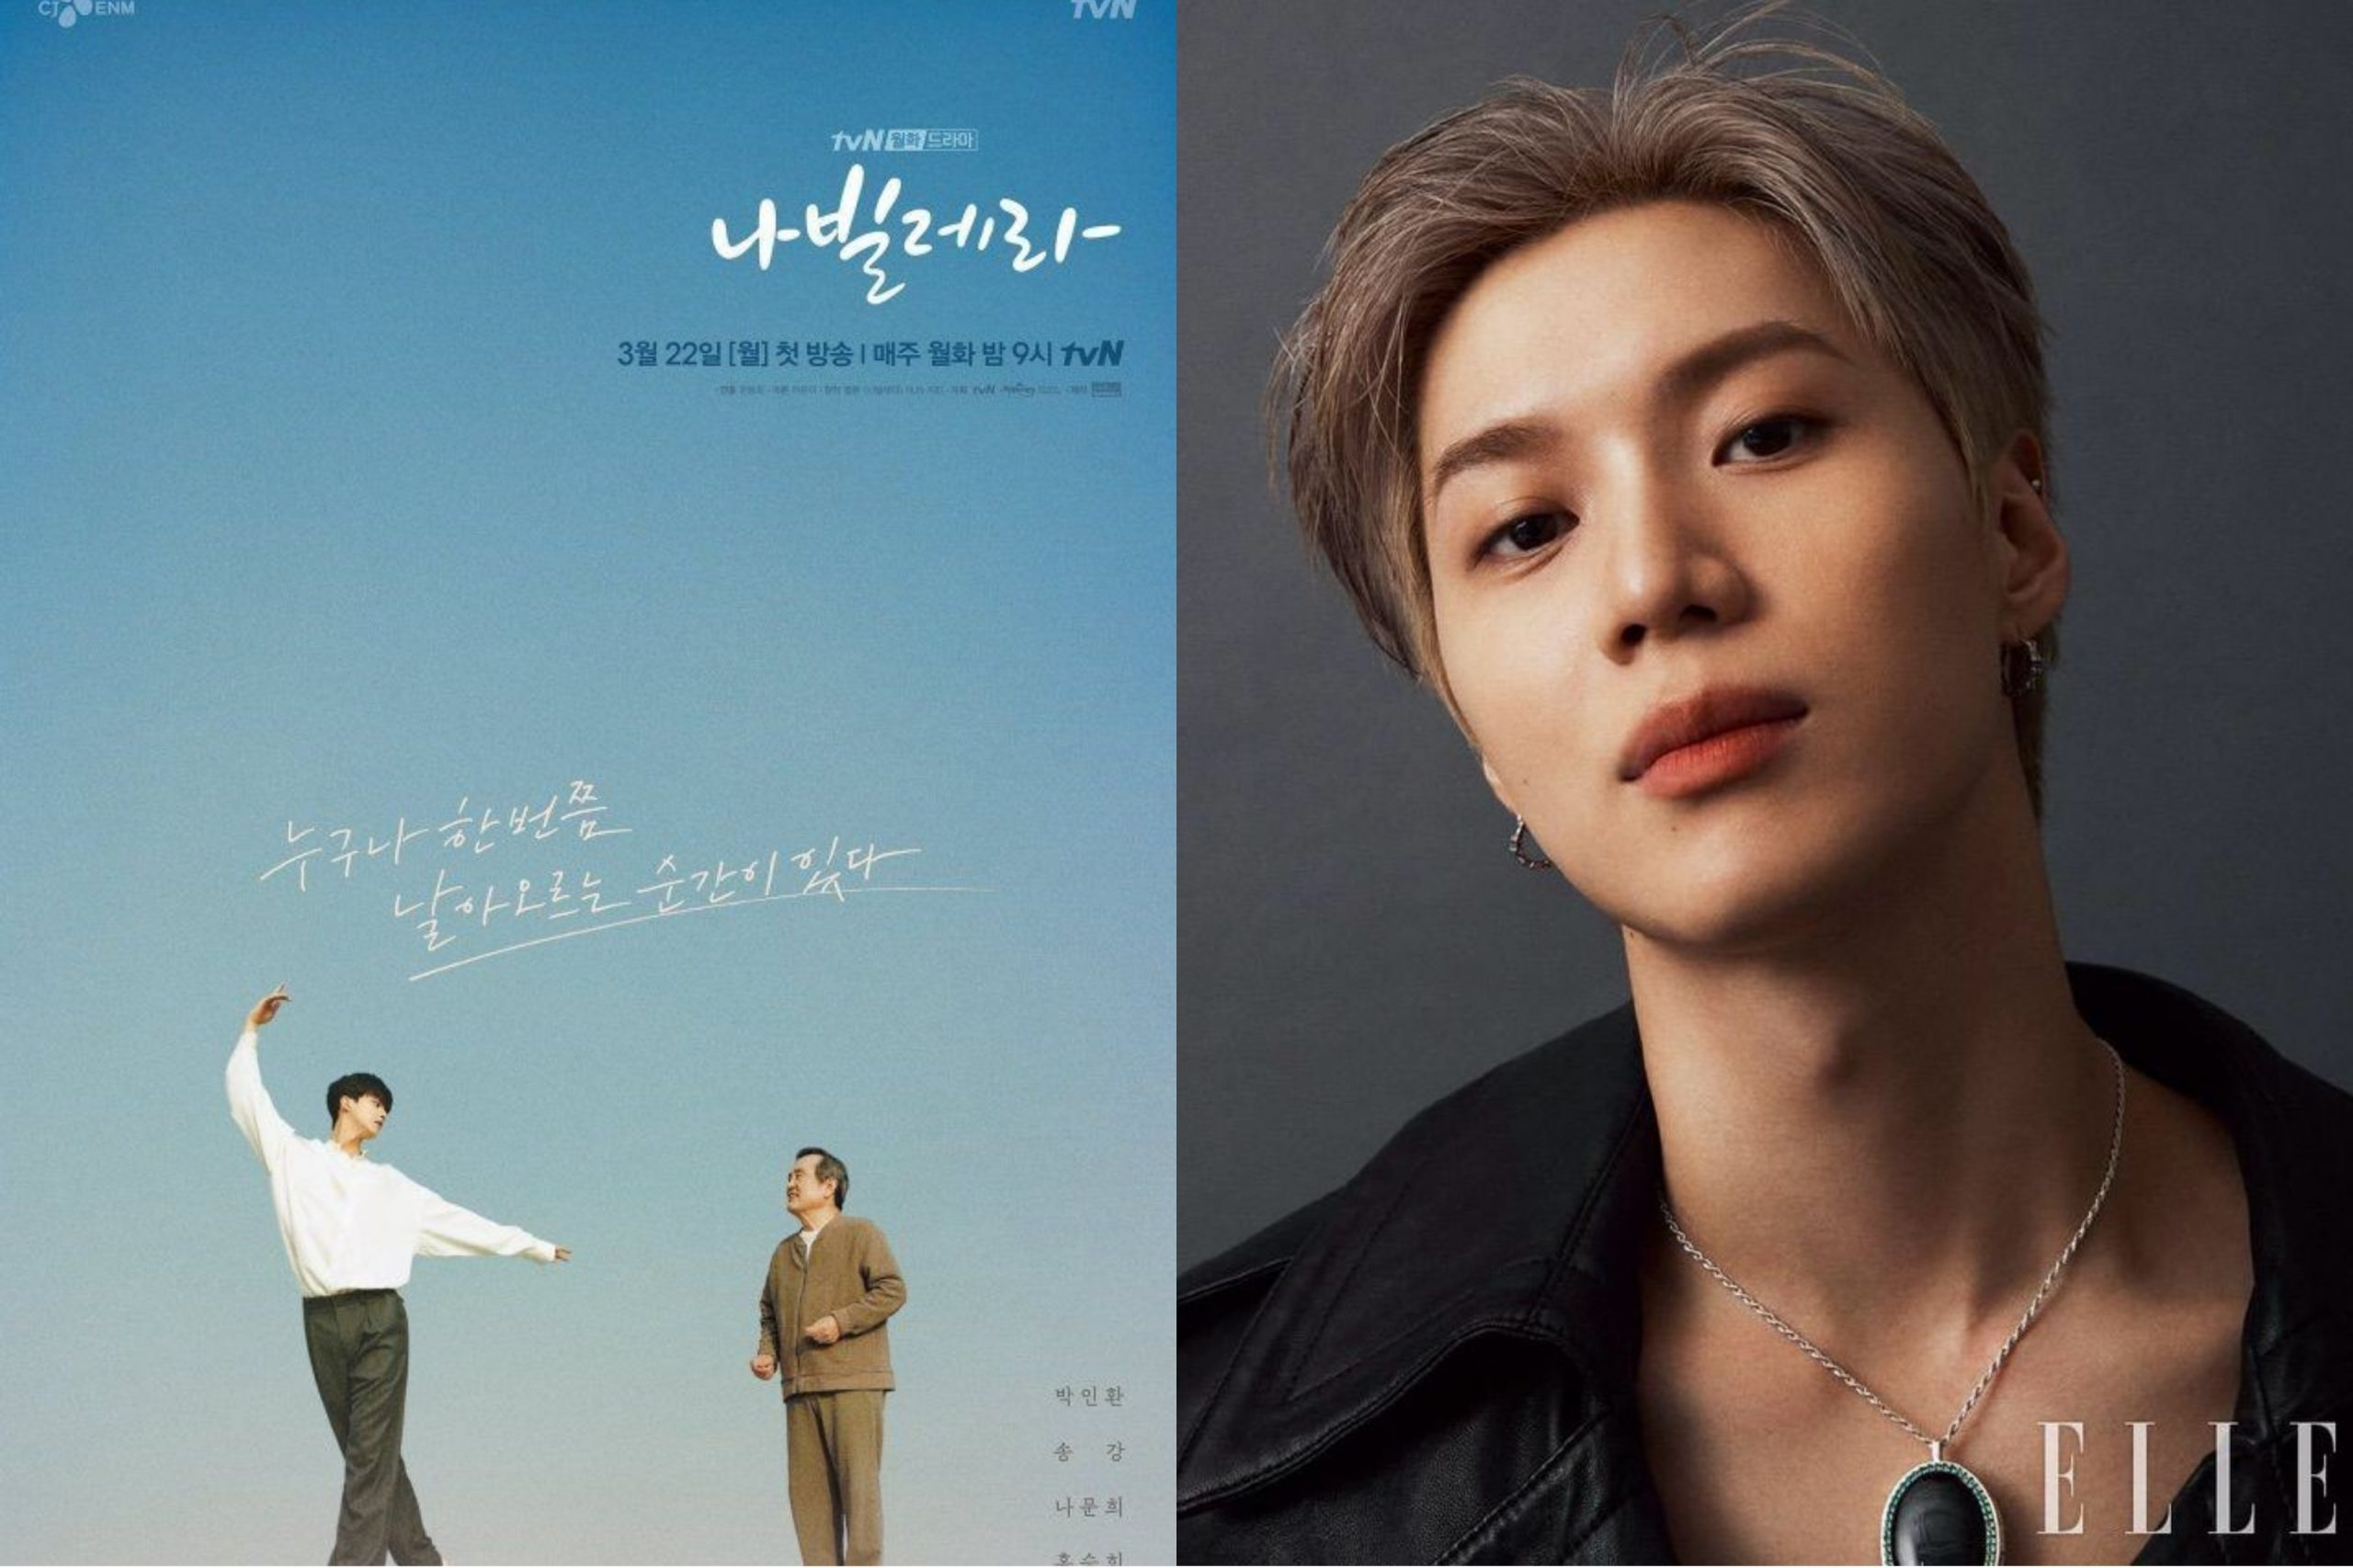 SHINee's Taemin to release his first OST in 6 years for tvN's 'Navillera'